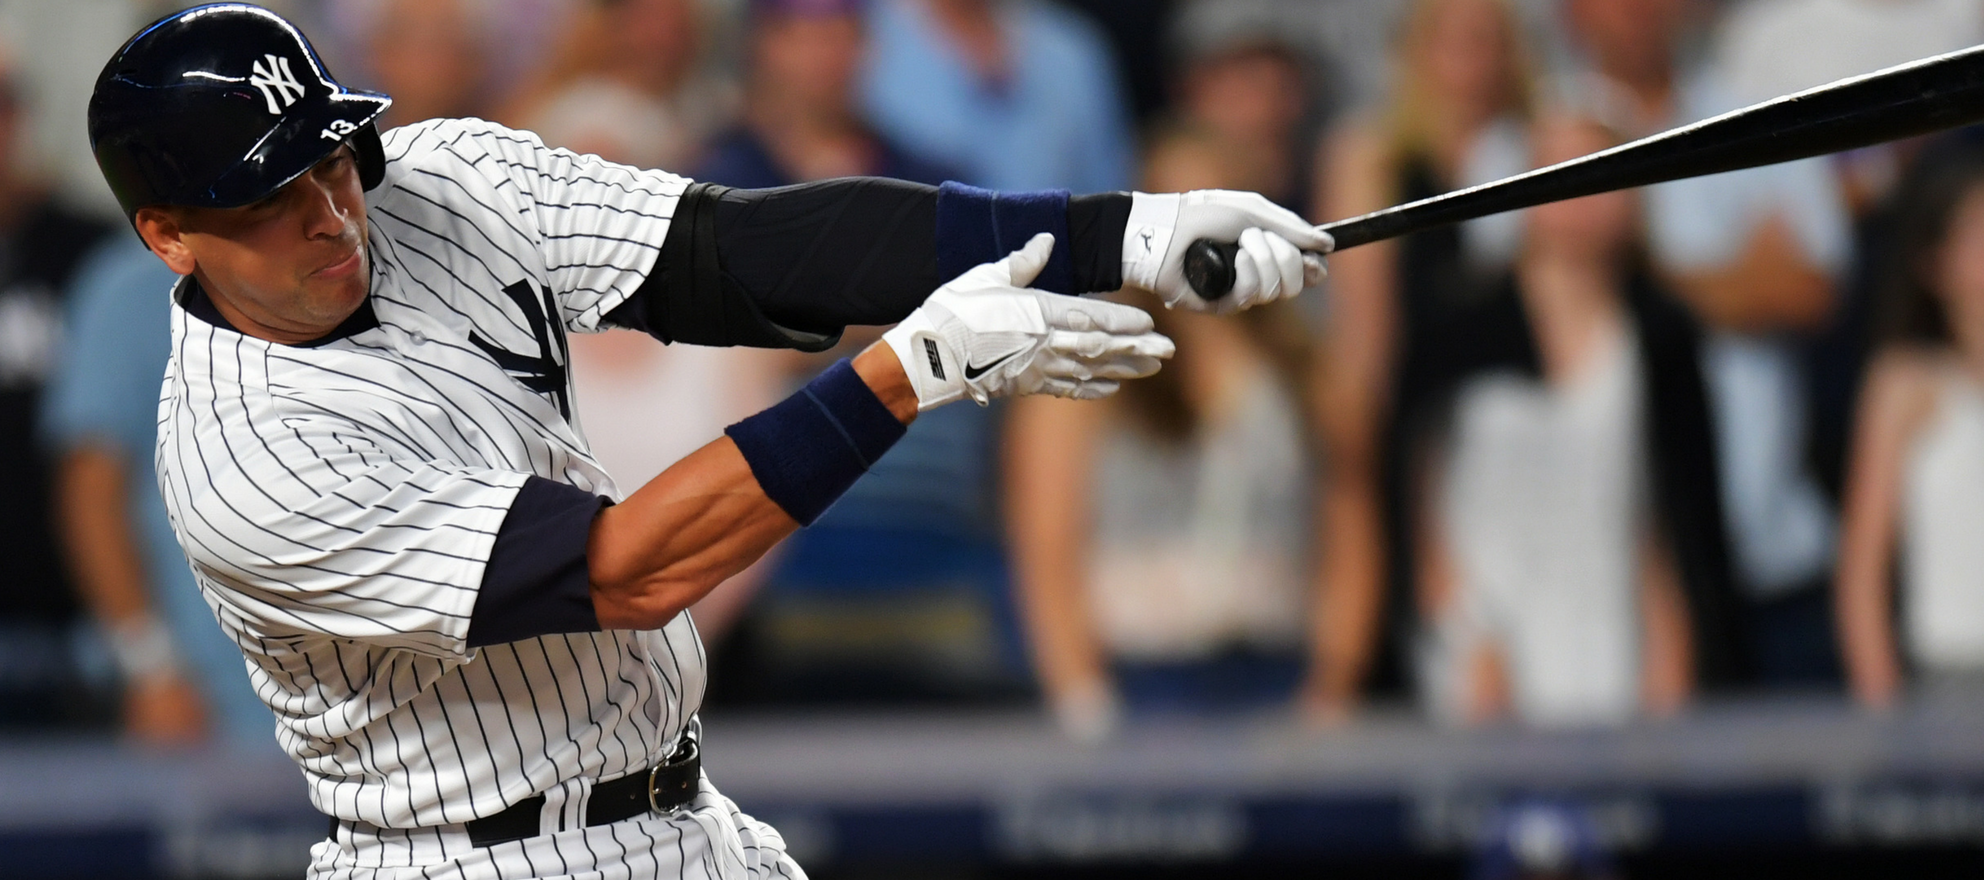 a-rod real estate investing